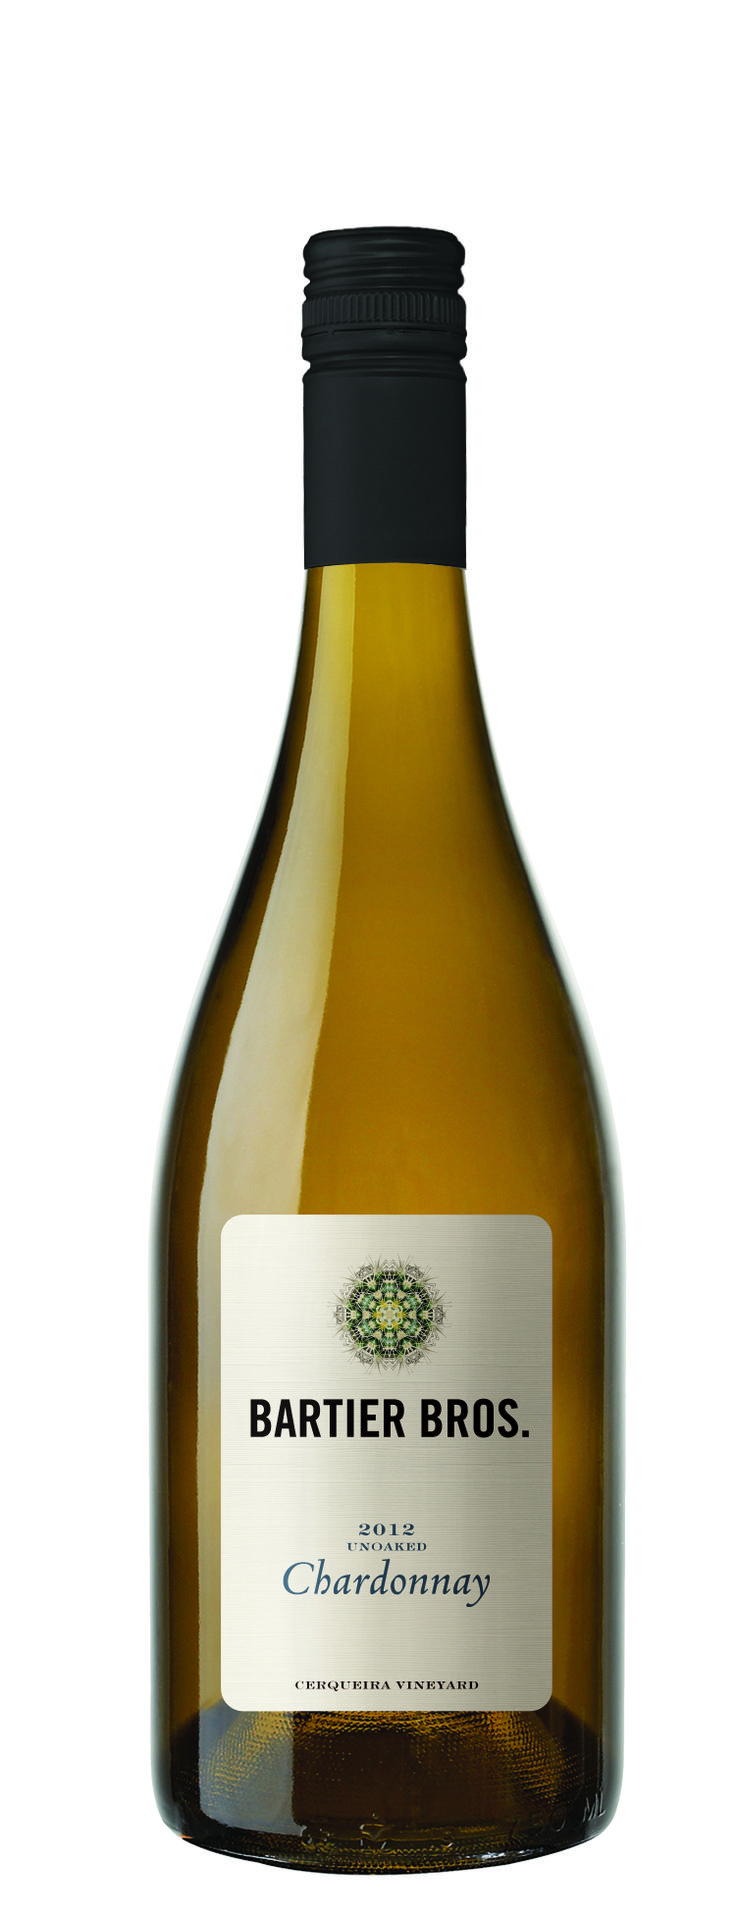 Bartier Bros. - 2012 Unoaked Chardonnay - Aromas of caramel, peach, lime, and gun flint.  Full bodied with a crisp acidity which contrasts the rich aromas.  Goes well with barbeque or anything smoked. #bcwine #bc #okanagan #bc